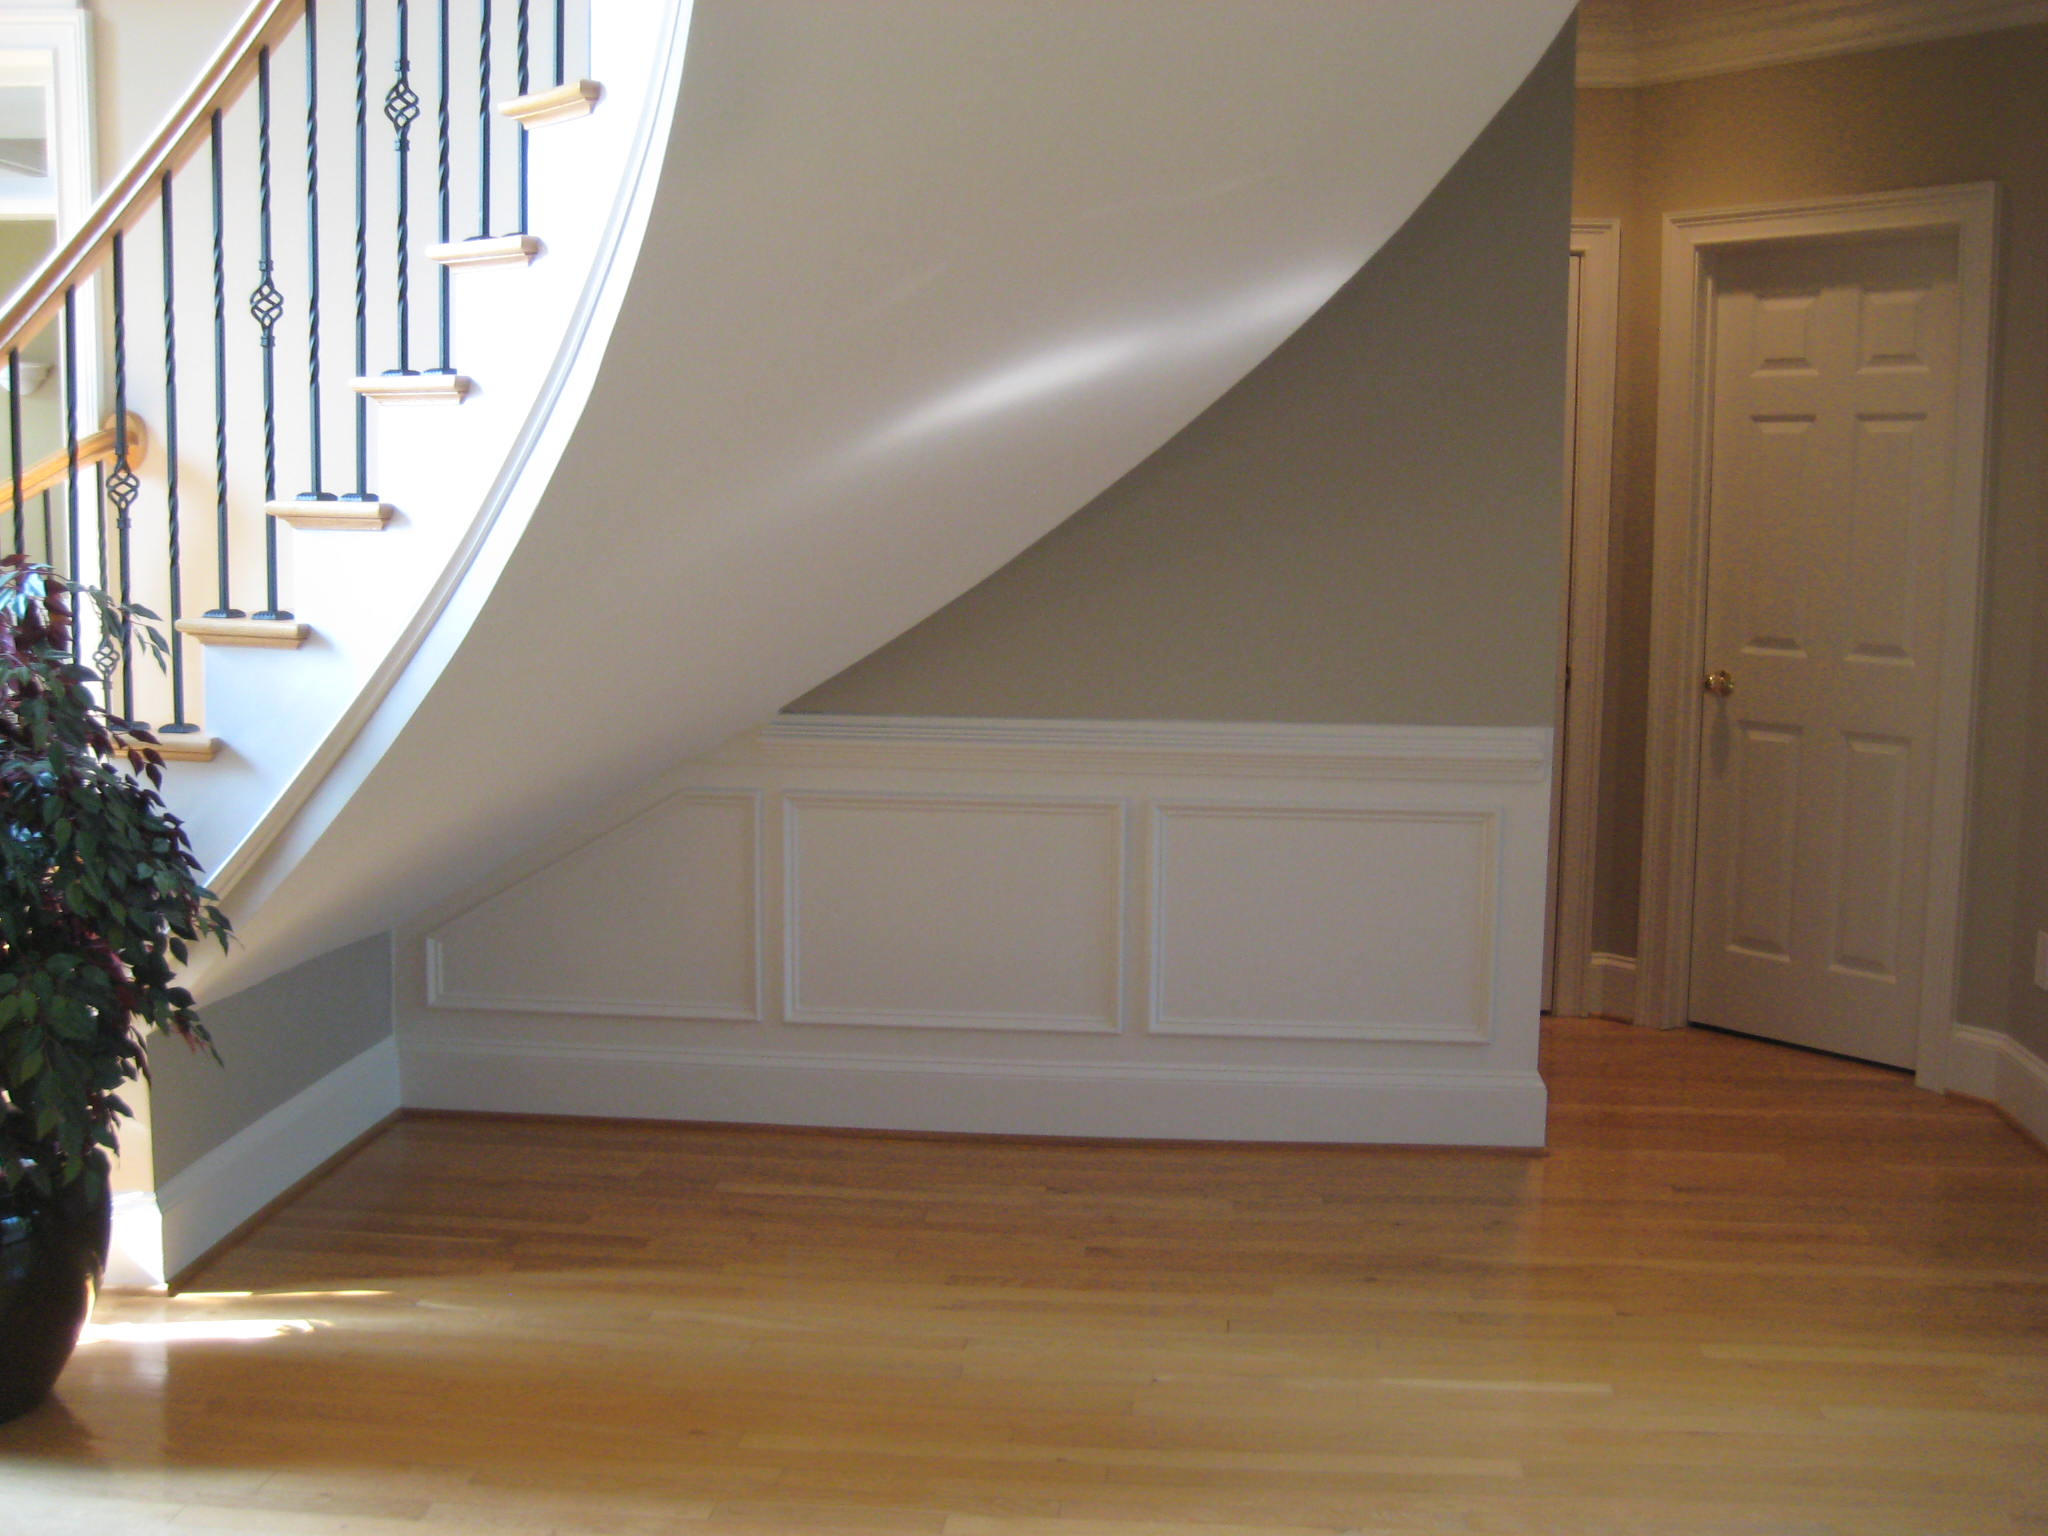 Beautifying staircase with additional wains coating and more.